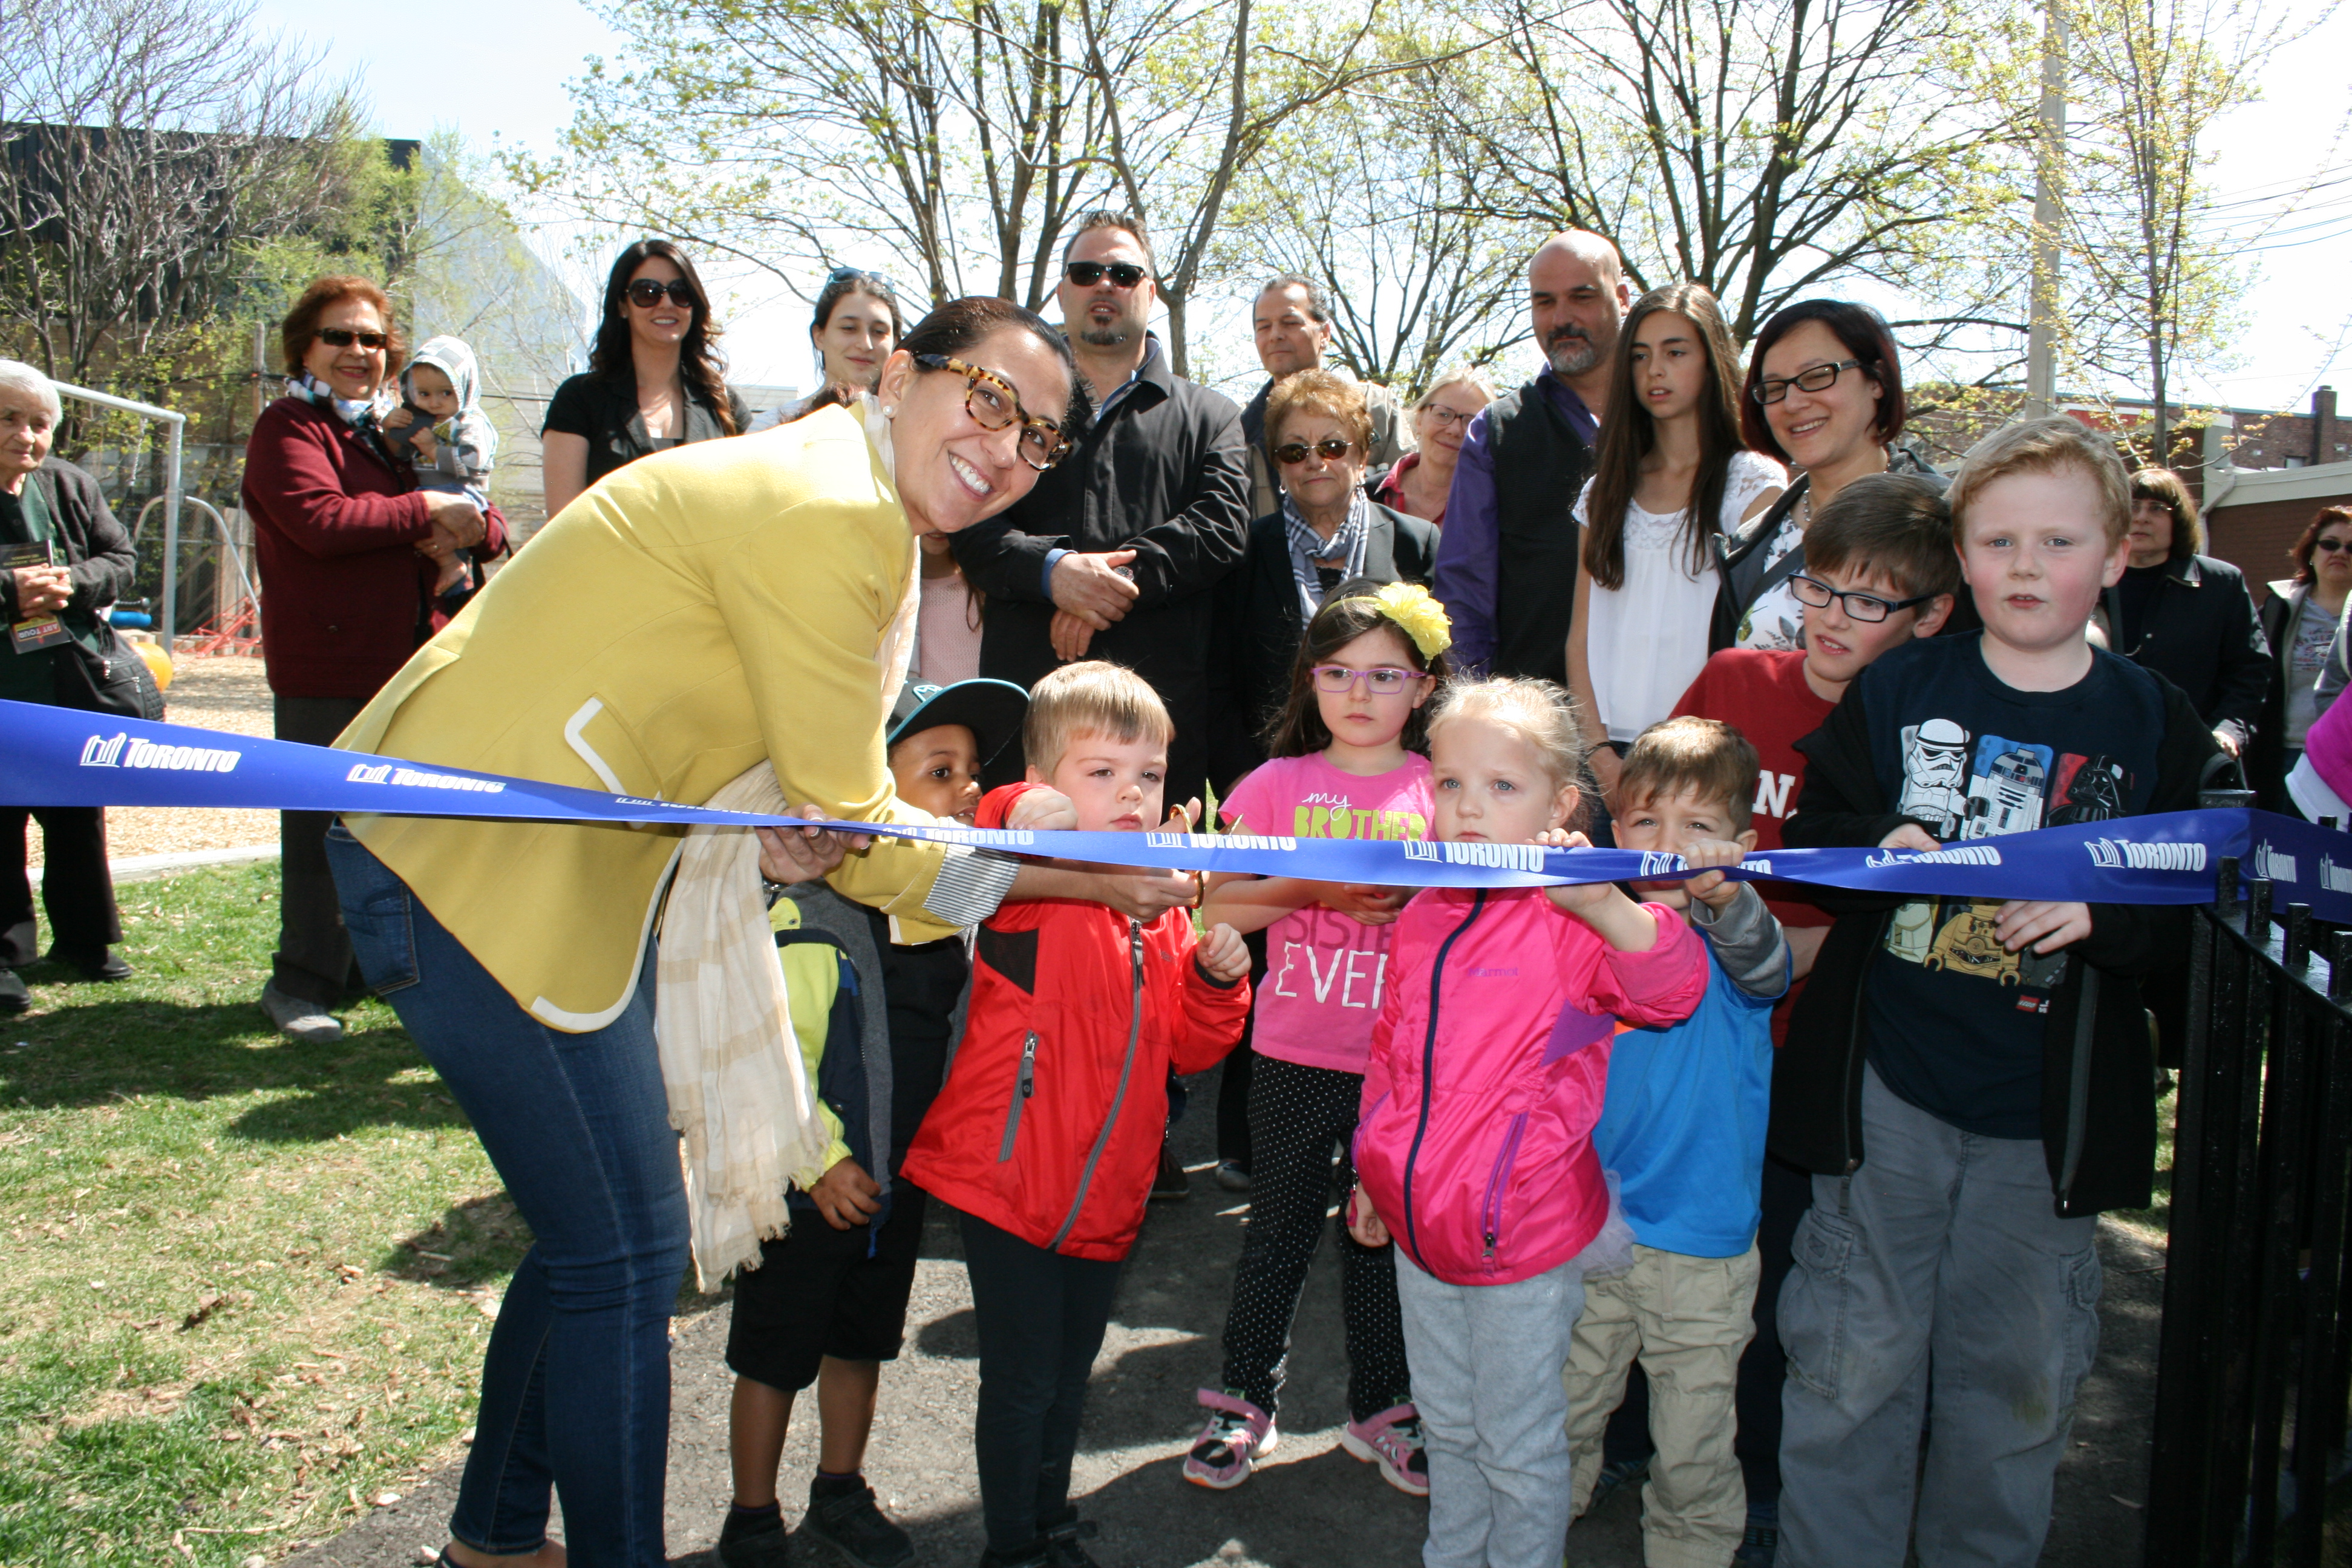 Salem_Westmoreland_Ribbon_Cutting.JPG